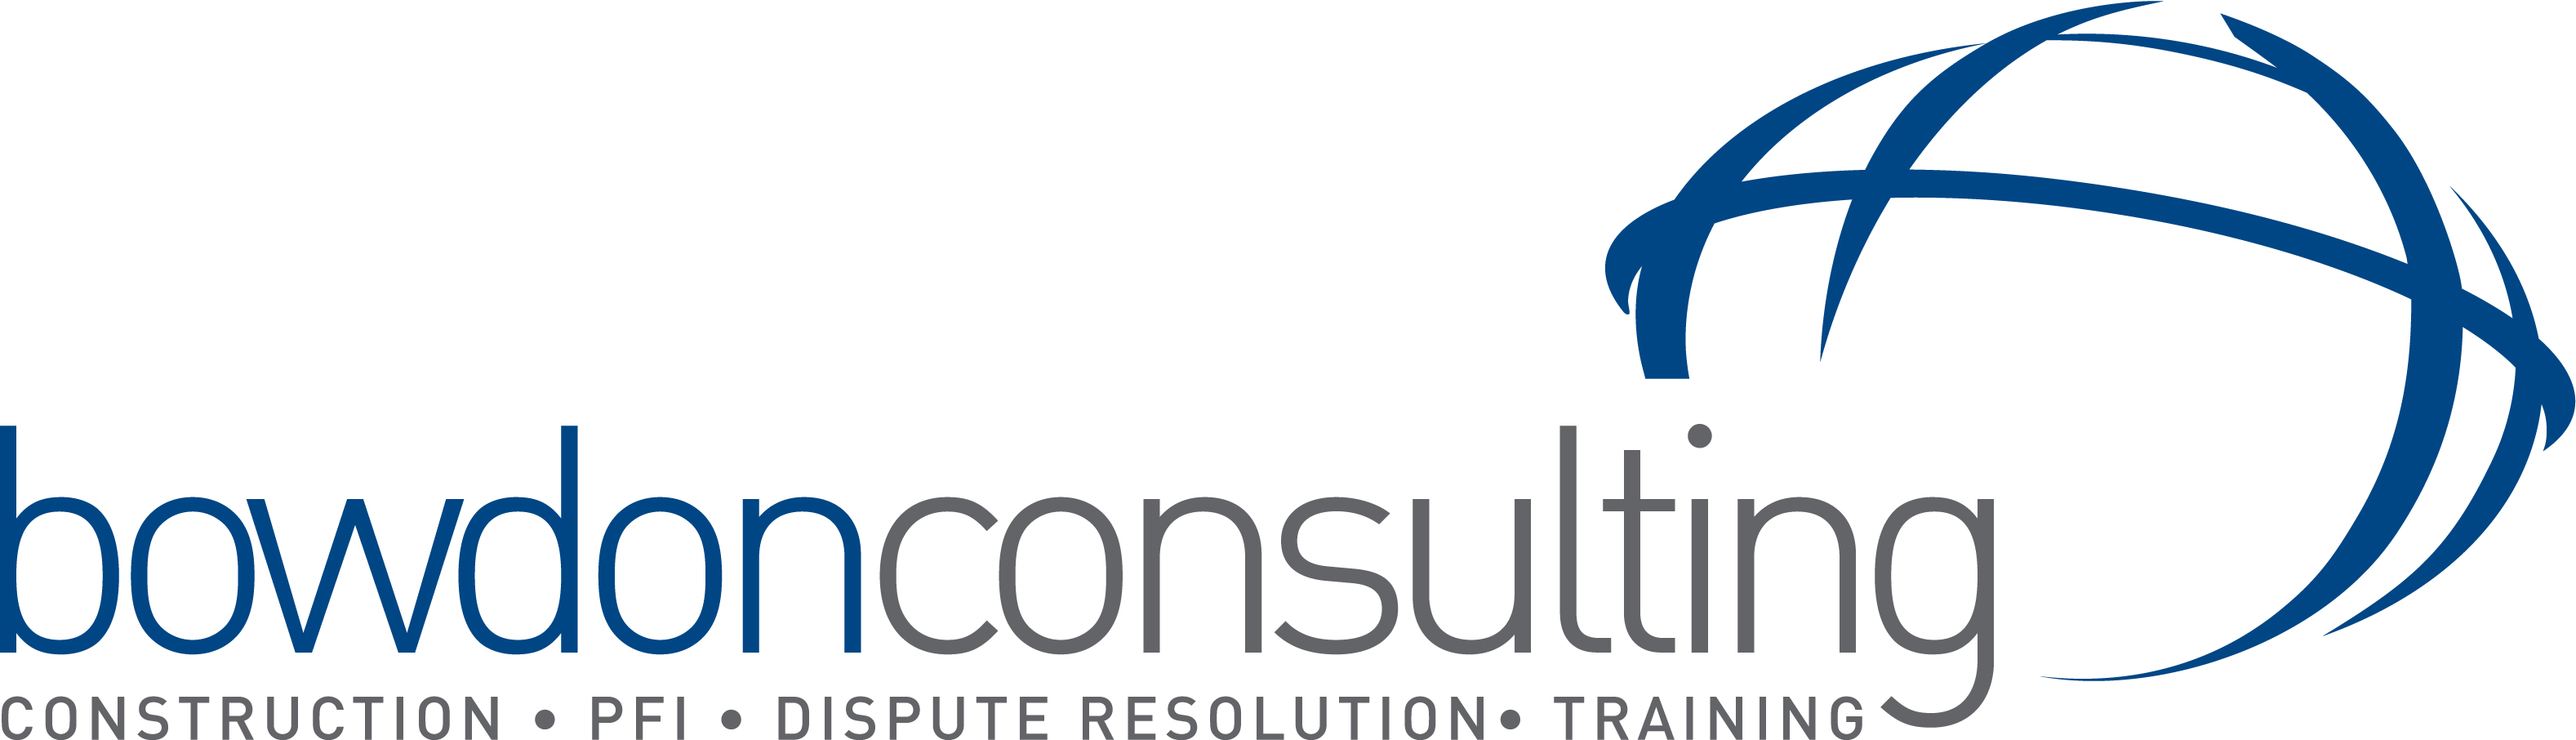 Bowdon Consulting